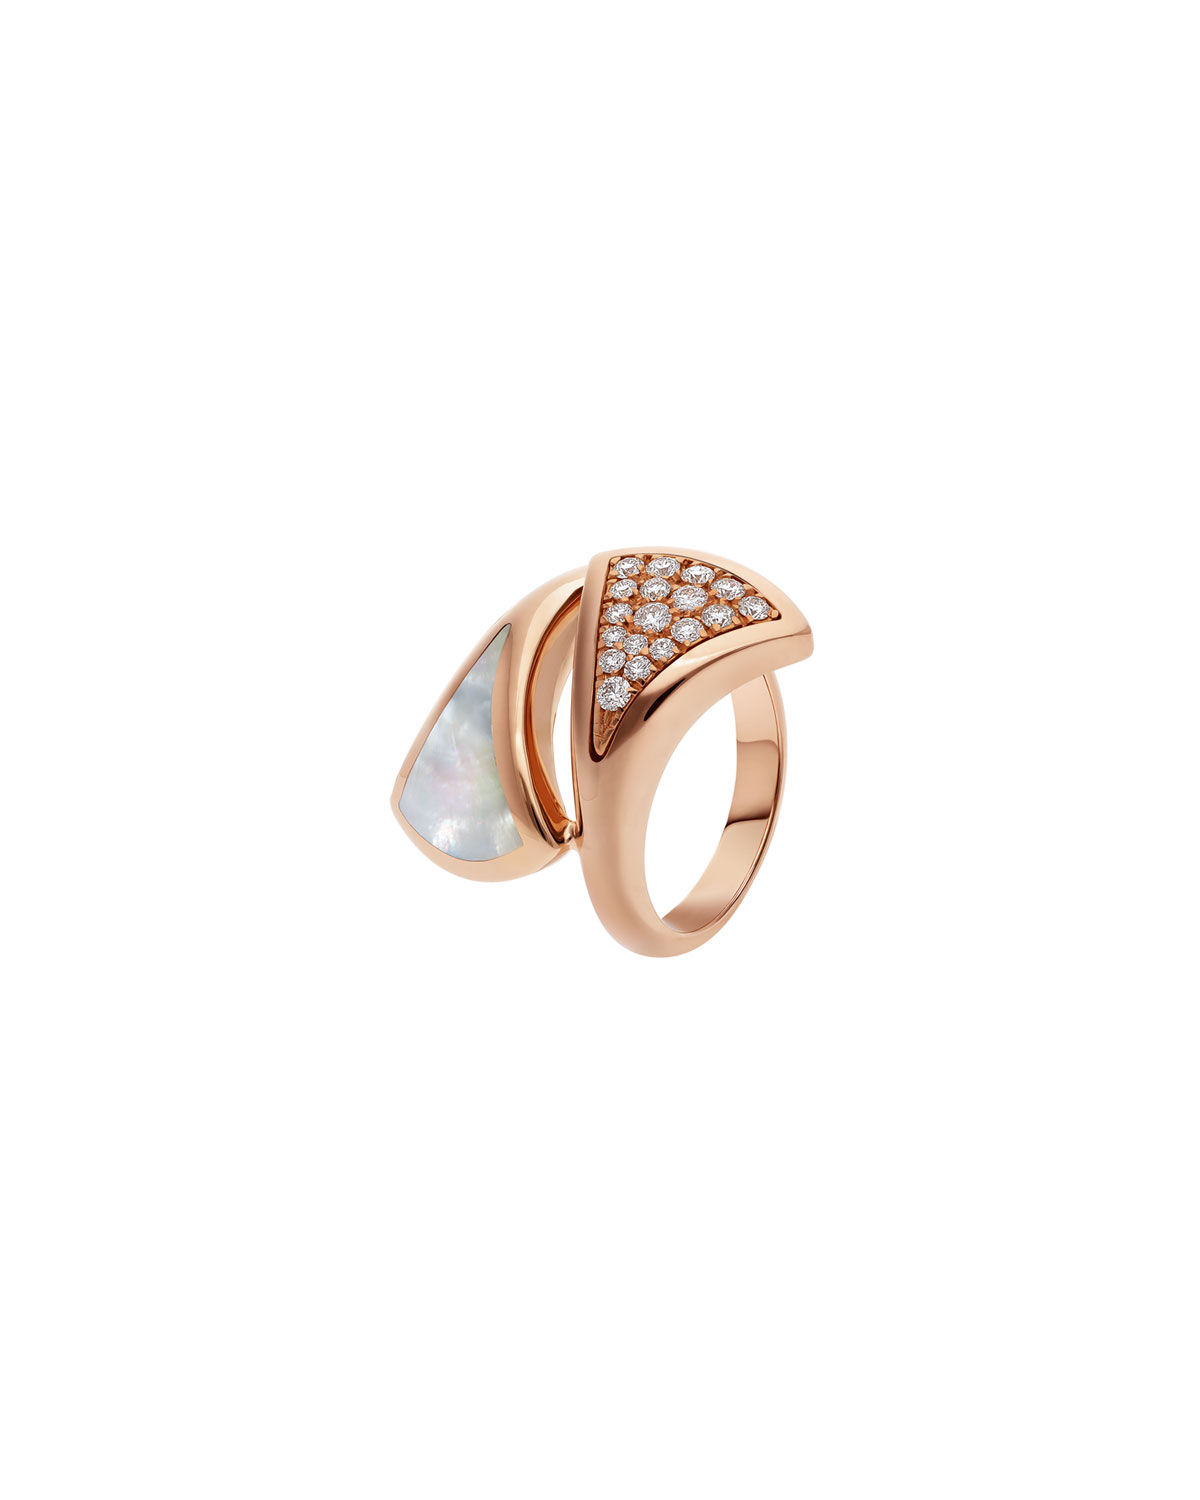 Divas' Dream 18k Rose Gold Mother-of-Pearl and Diamond Ring